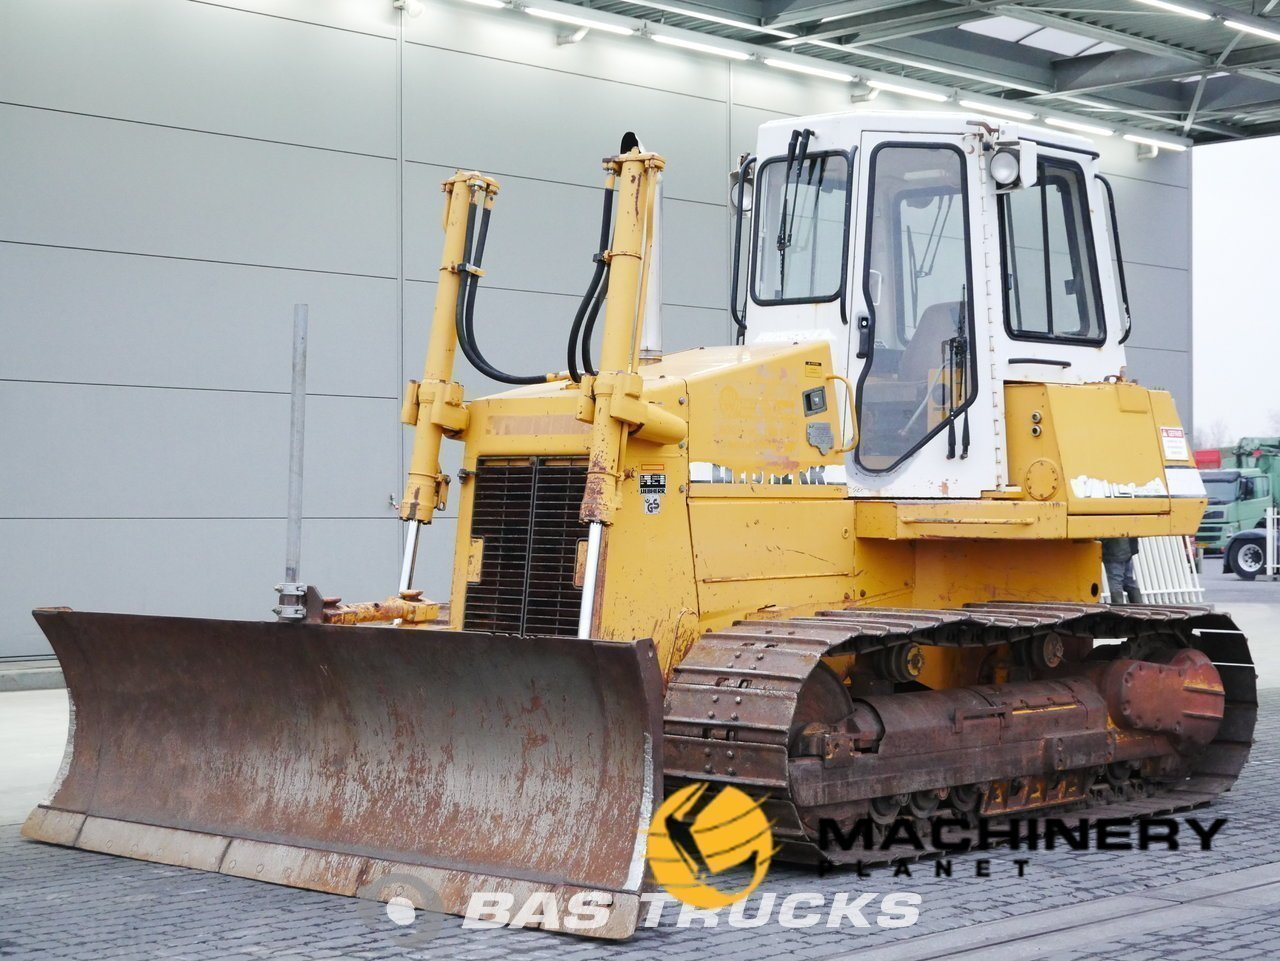 Used-Construction-equipment-Liebherr-PR-712M-Track-1992_144663_1-1553937242832_5c9f335acb25b-1.jpg